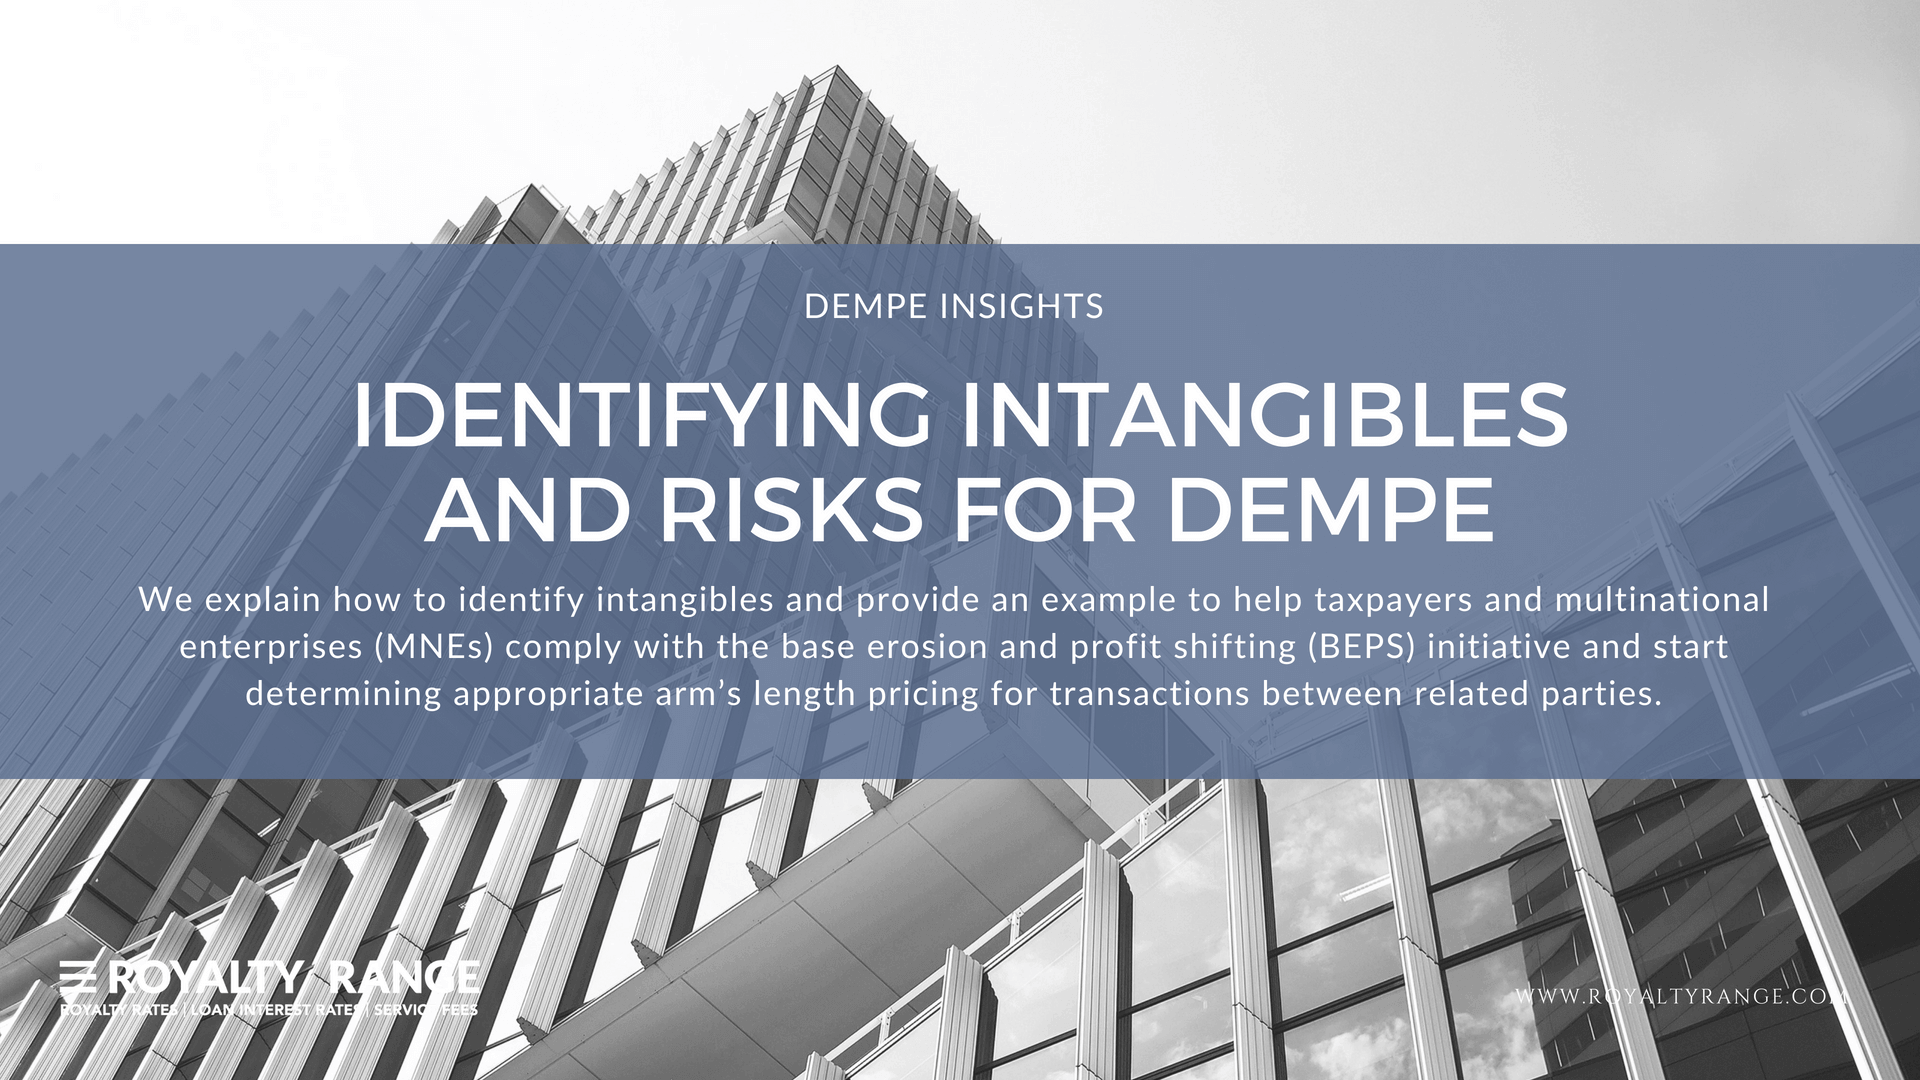 Identifying intangibles and risks for DEMPE